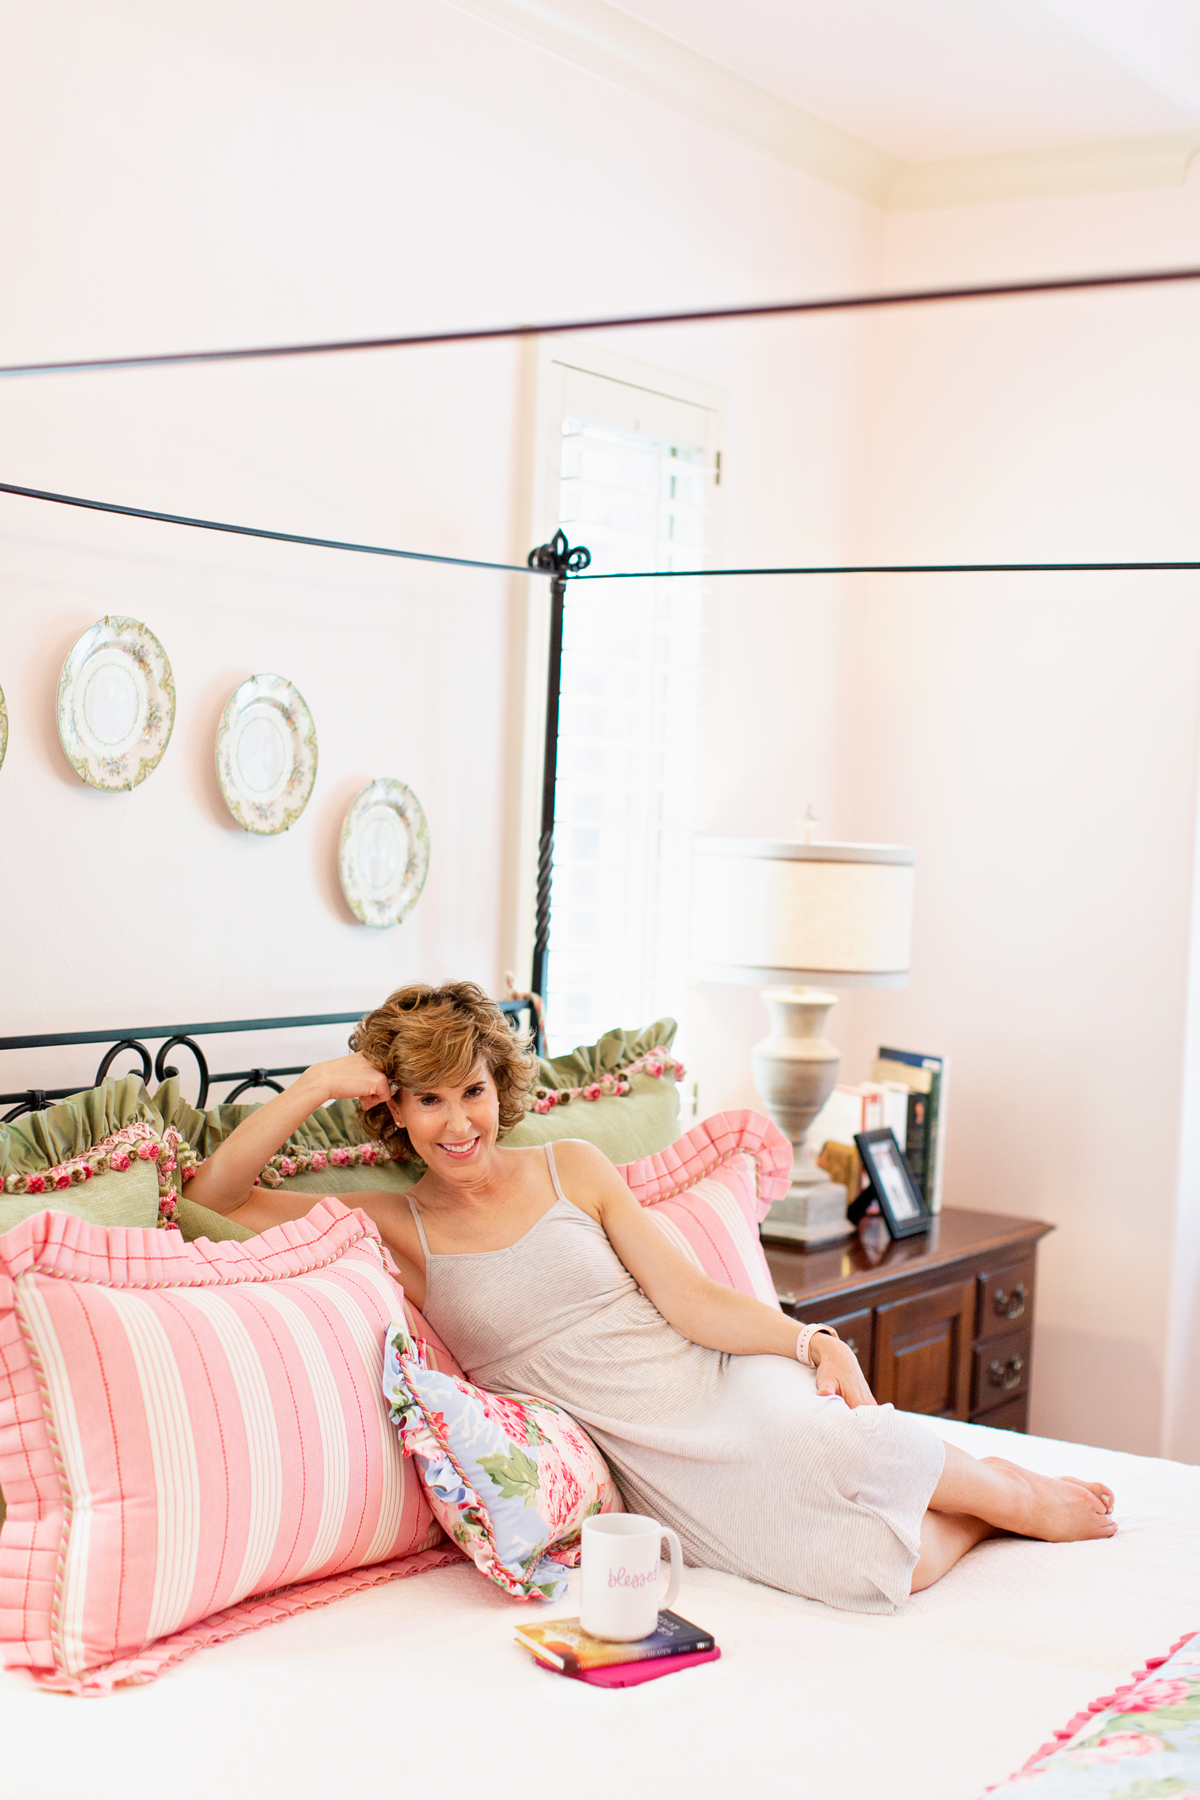 woman in nightgown on her bed looking at camera